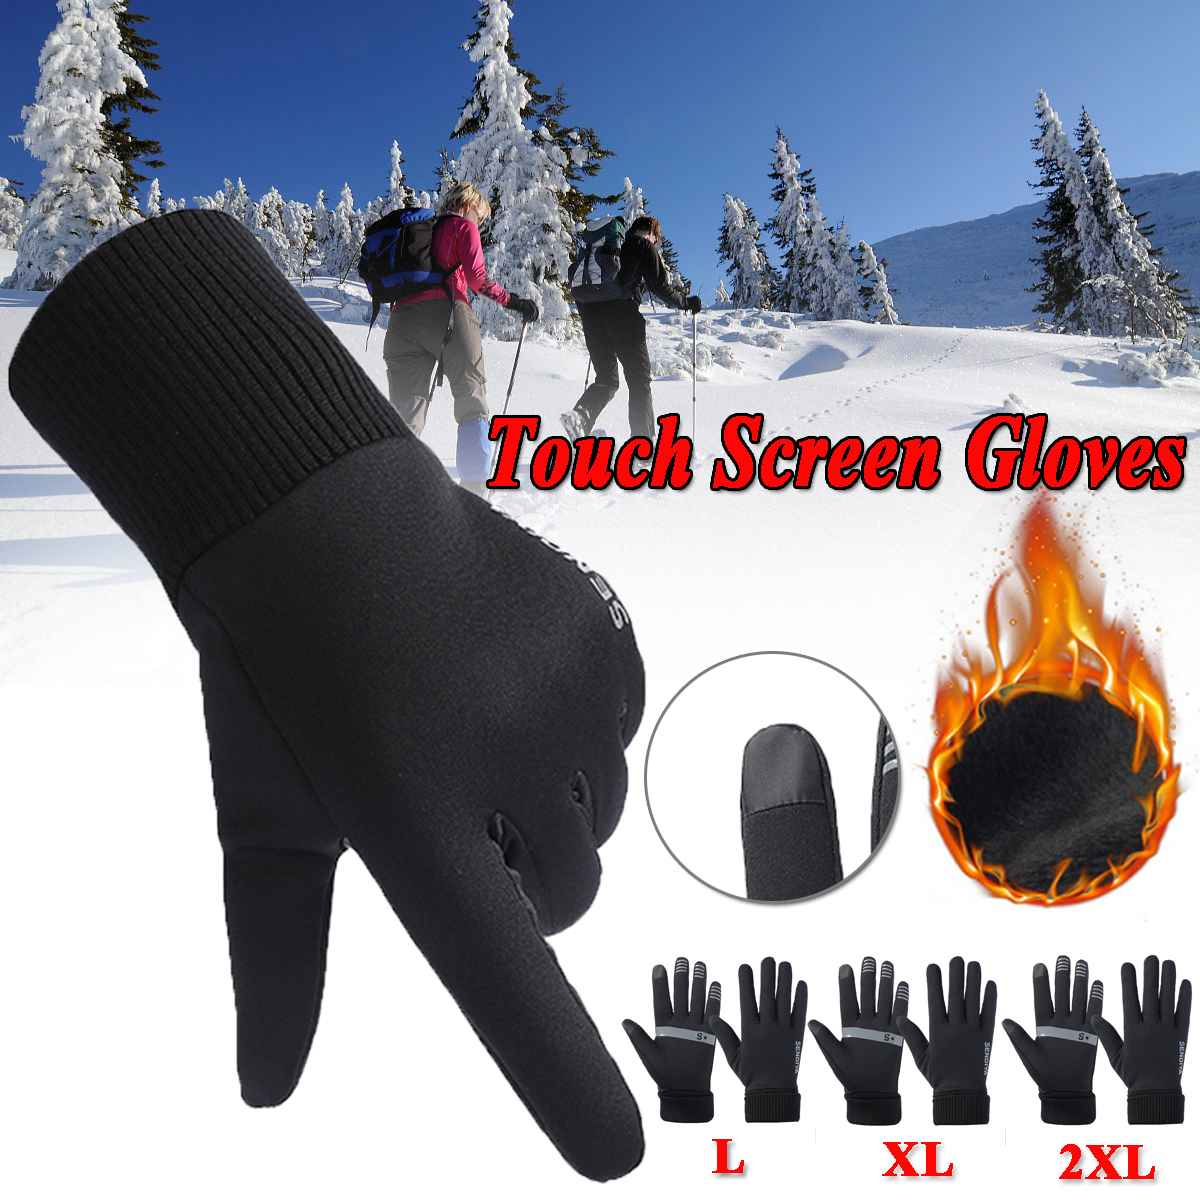 Thermal Ski Gloves Winter Fleece Waterproof Snowboard Gloves Snow Motorcycle Skiing Gloves Sportswear For Men Women Gloves